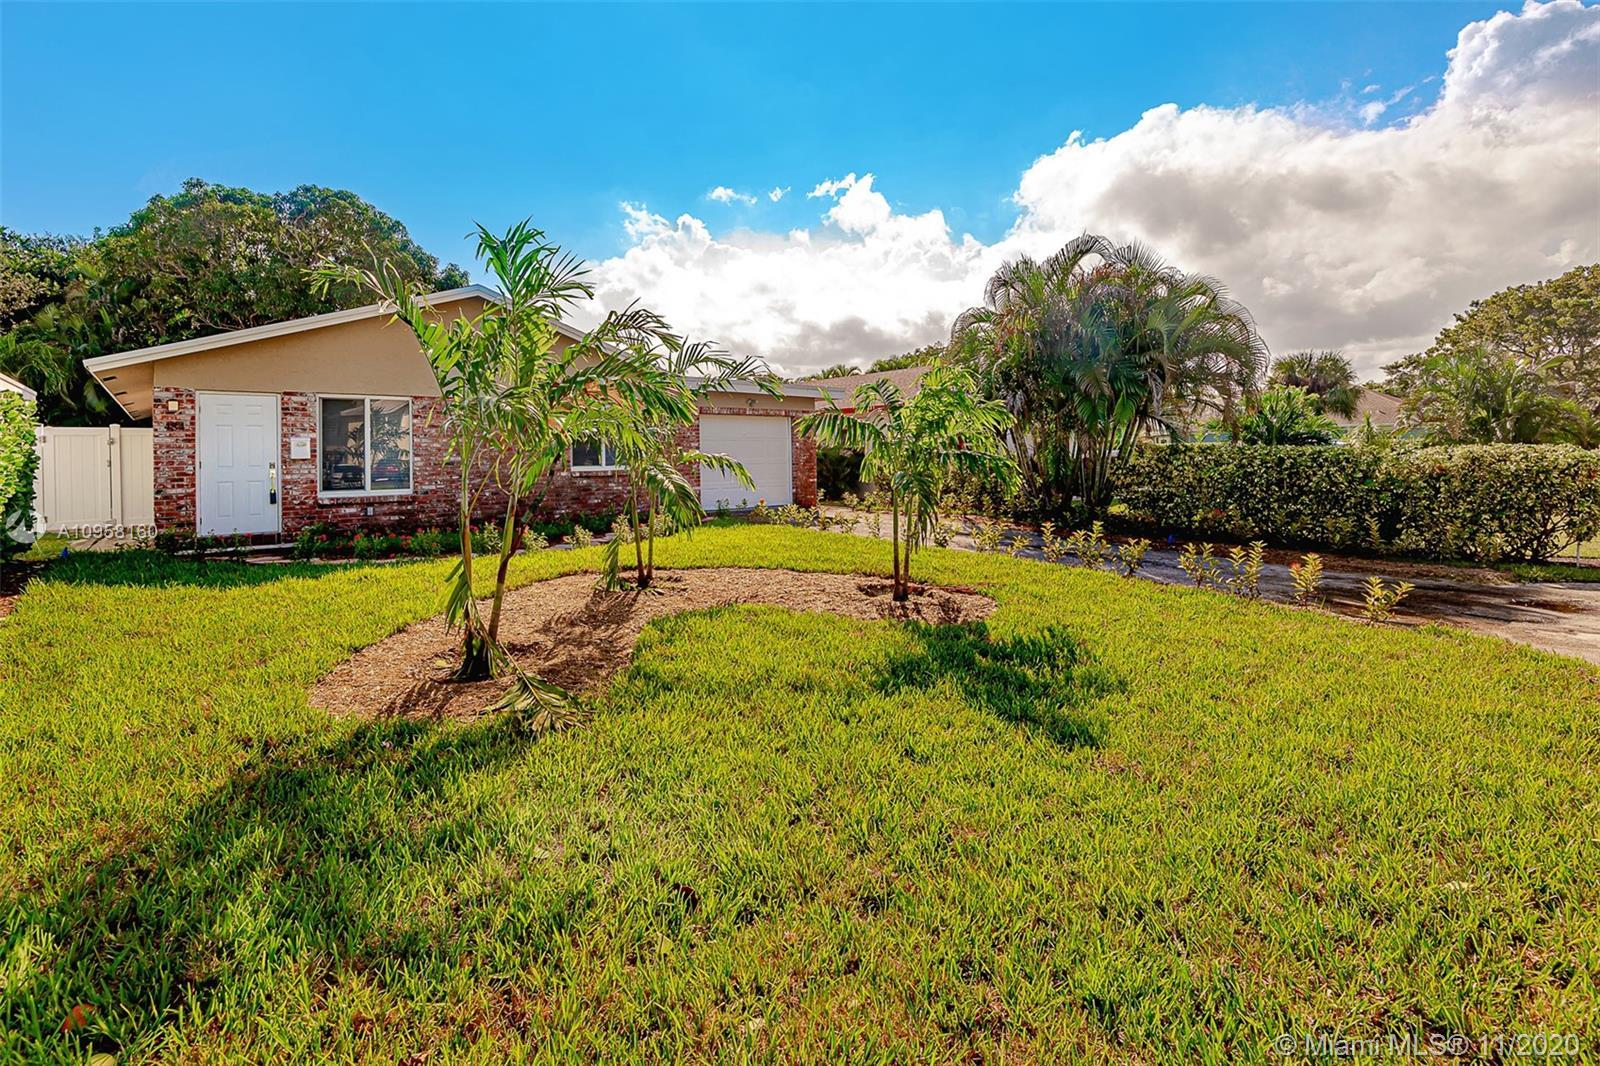 BEAUTIFULLY RENOVATED 3/2 GARAGE HOME IN BOCA RATON WITH BRAND NEW ROOF and HURRICANE IMPACT WINDOWS